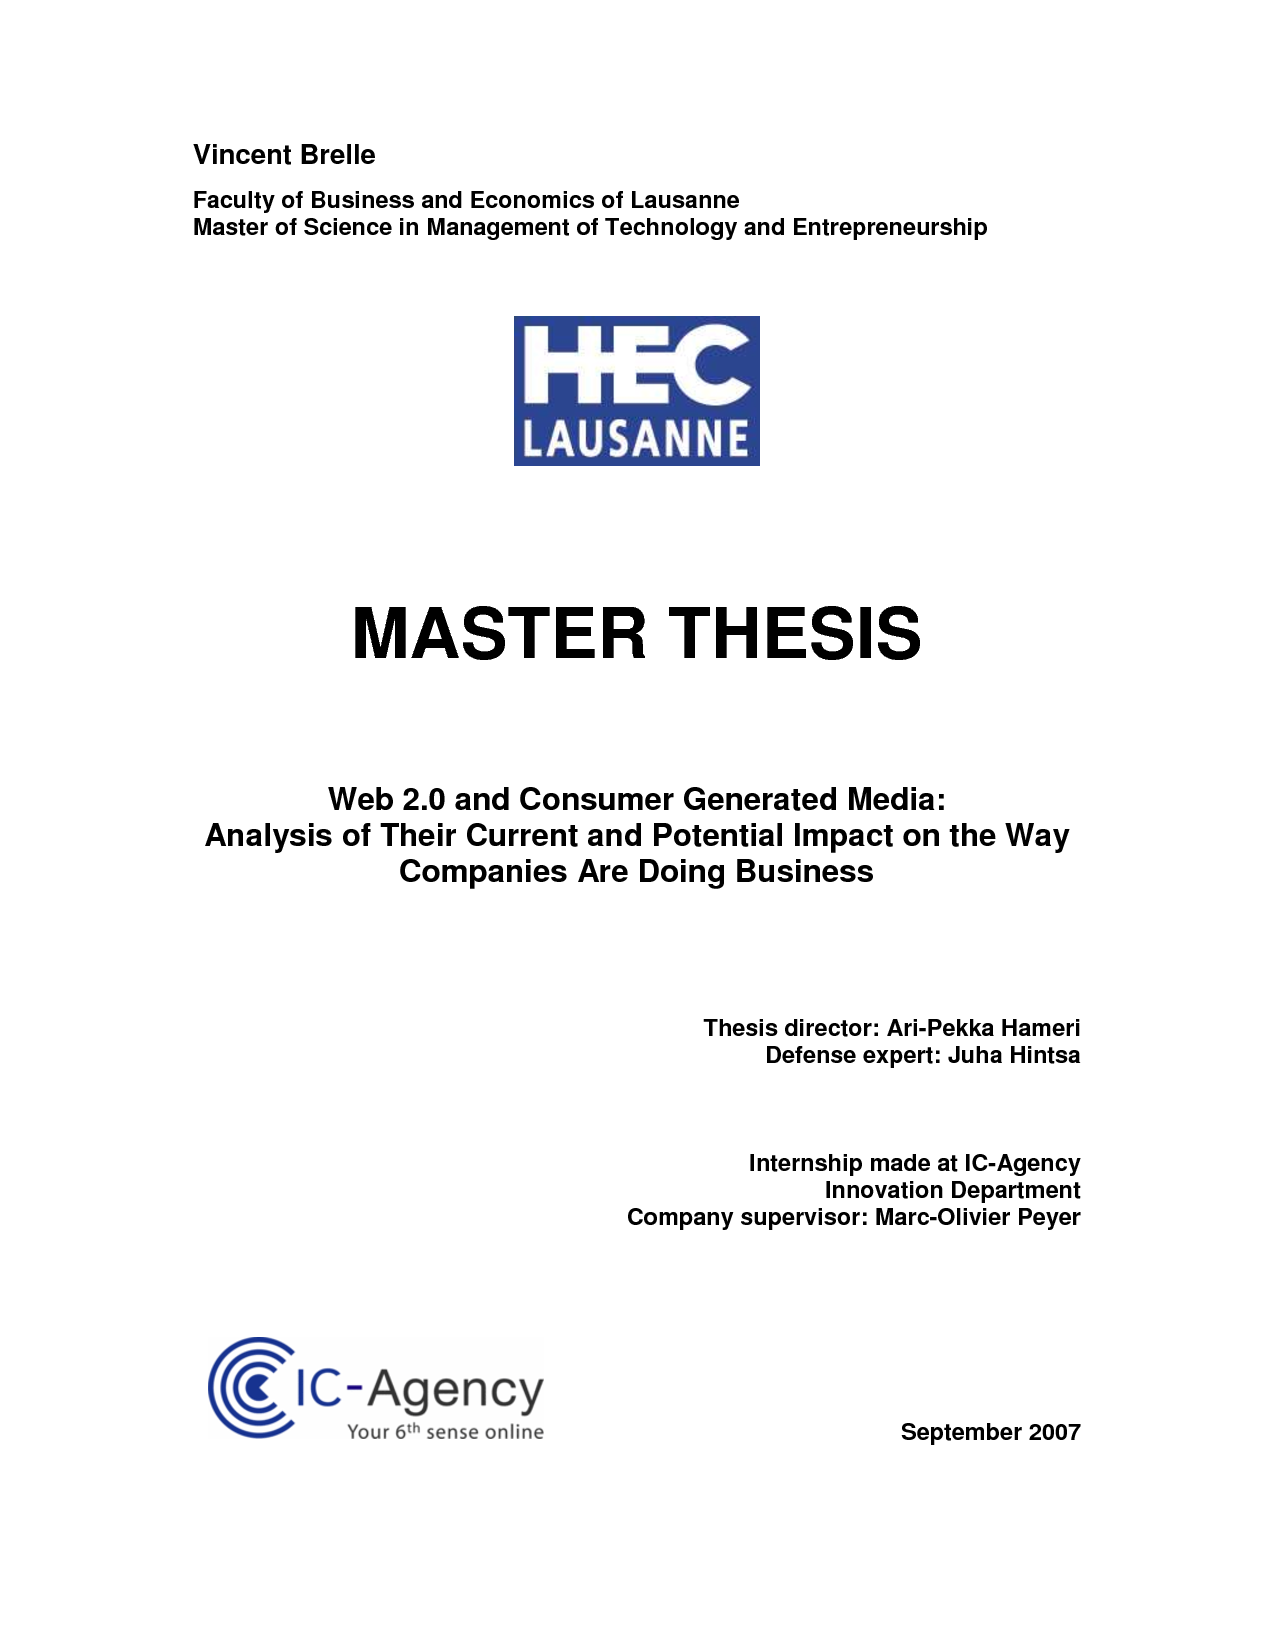 Is a thesis required for a masters degree